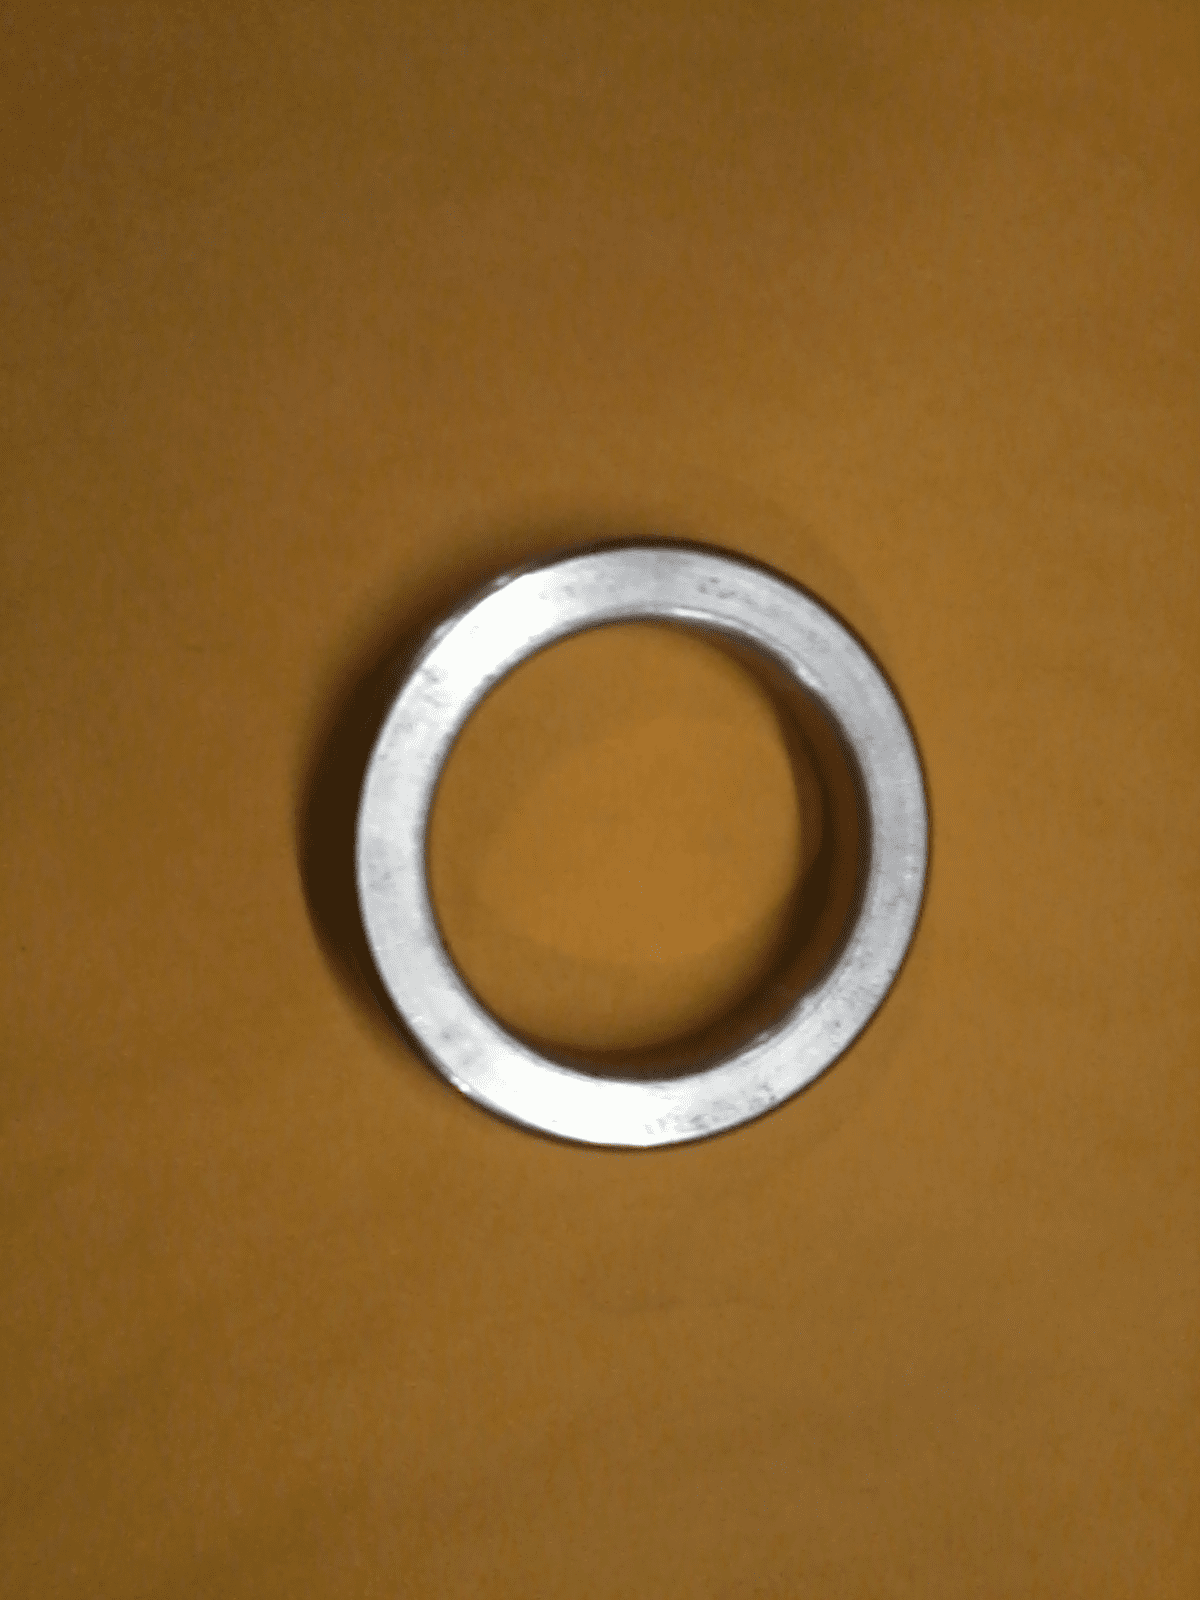 Taylor-Dunn Retainer Ring - 32-515-00